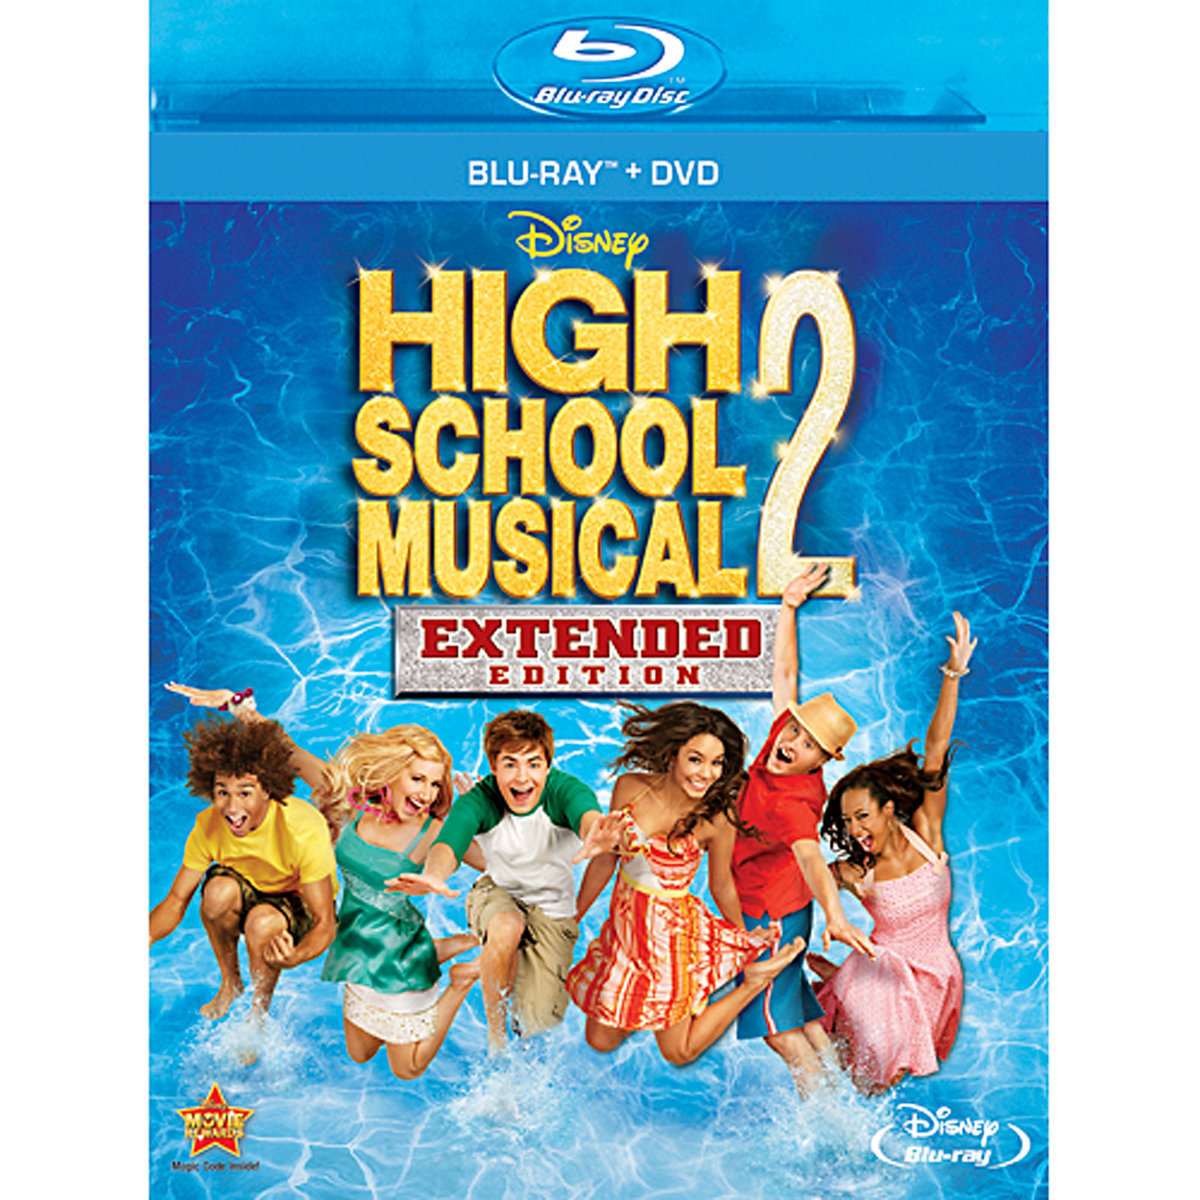 High School Musical 2 Extended Edition Blu Ray Dvd